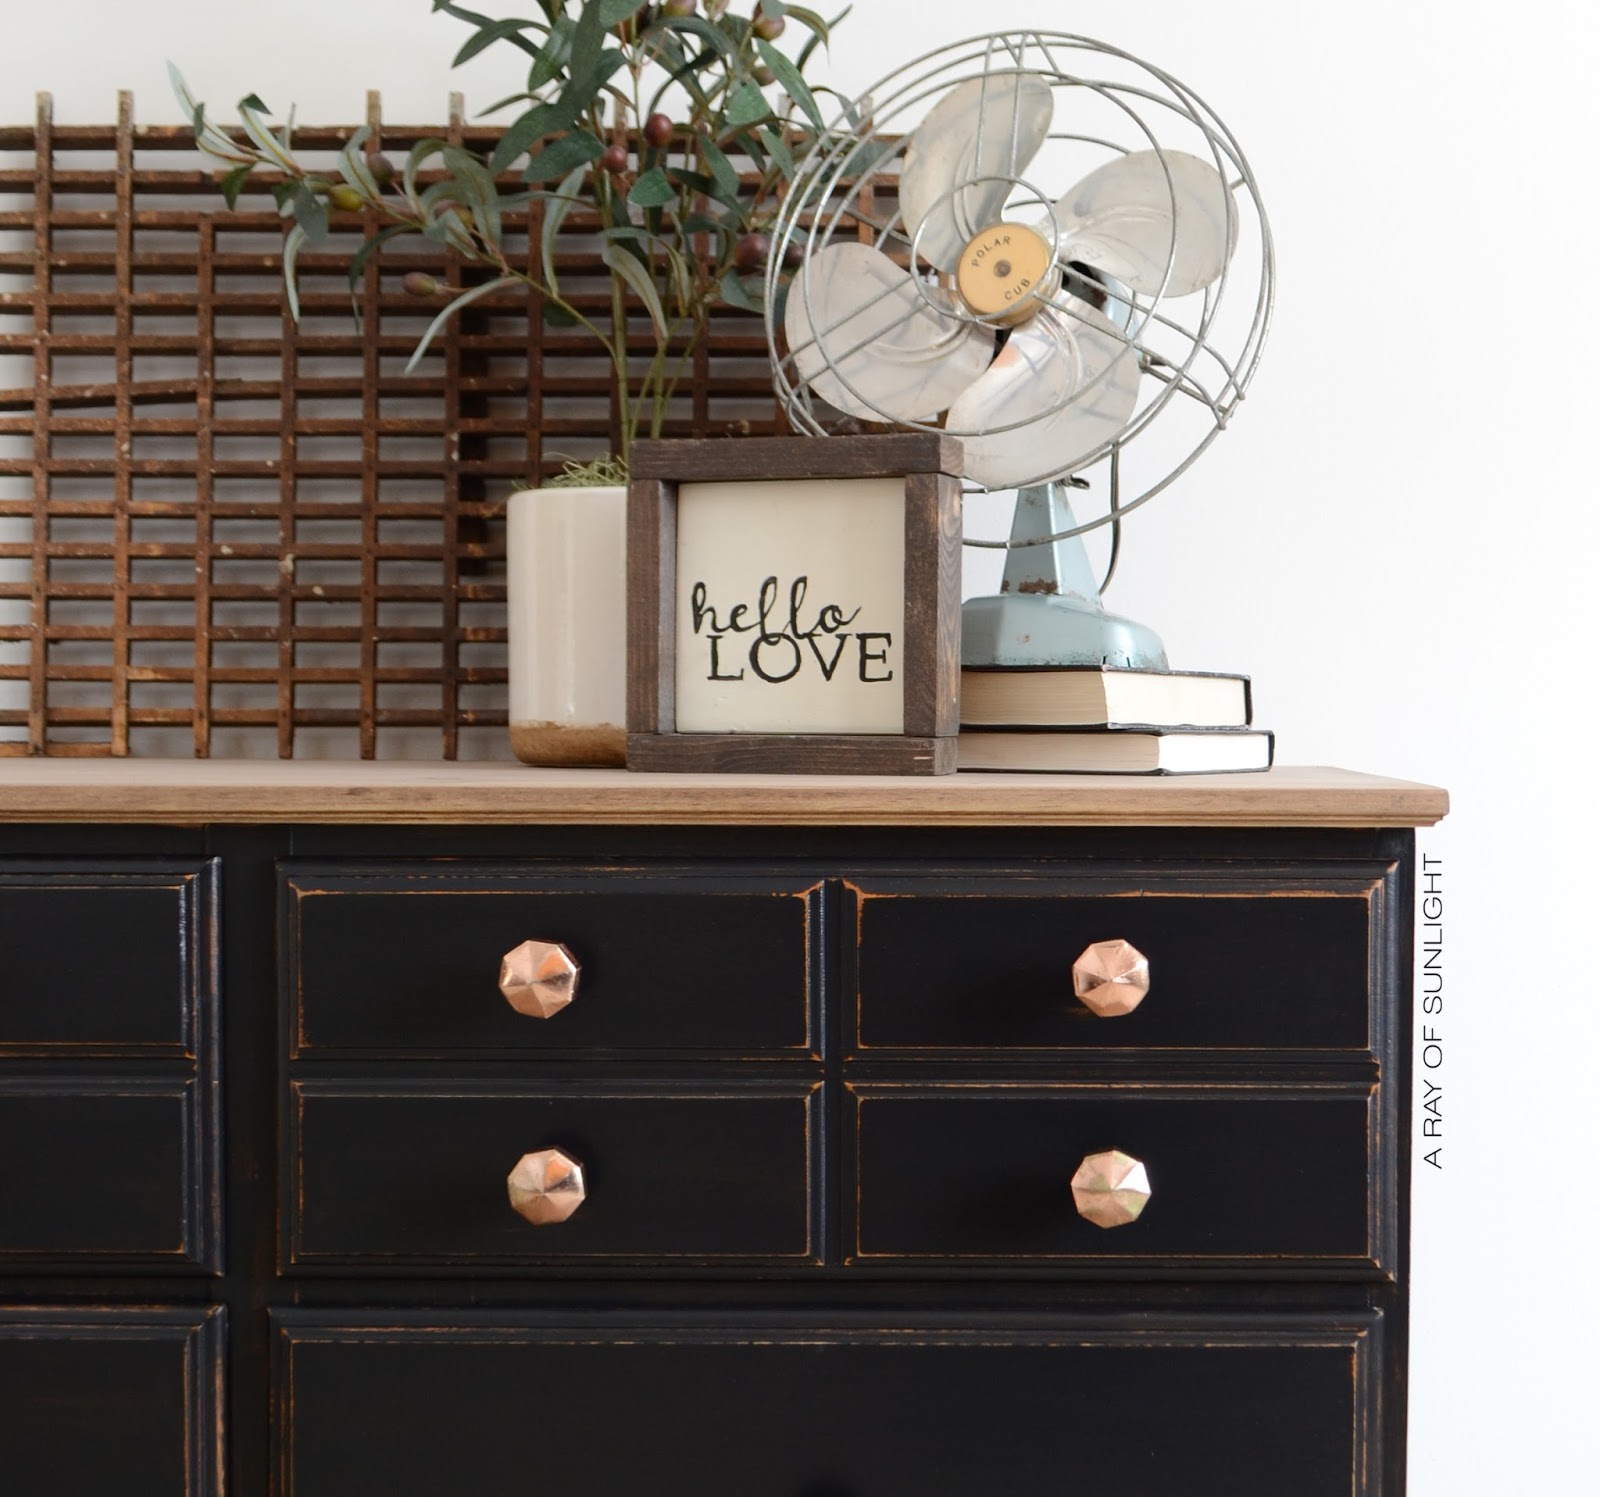 How I updated a vintage dresser by replacing it's fake wood top with real wood for a farmhouse rustic touch! Topped off with a Country Chic Paint black bottom and fancy gold knobs. By A Ray of Sunlight